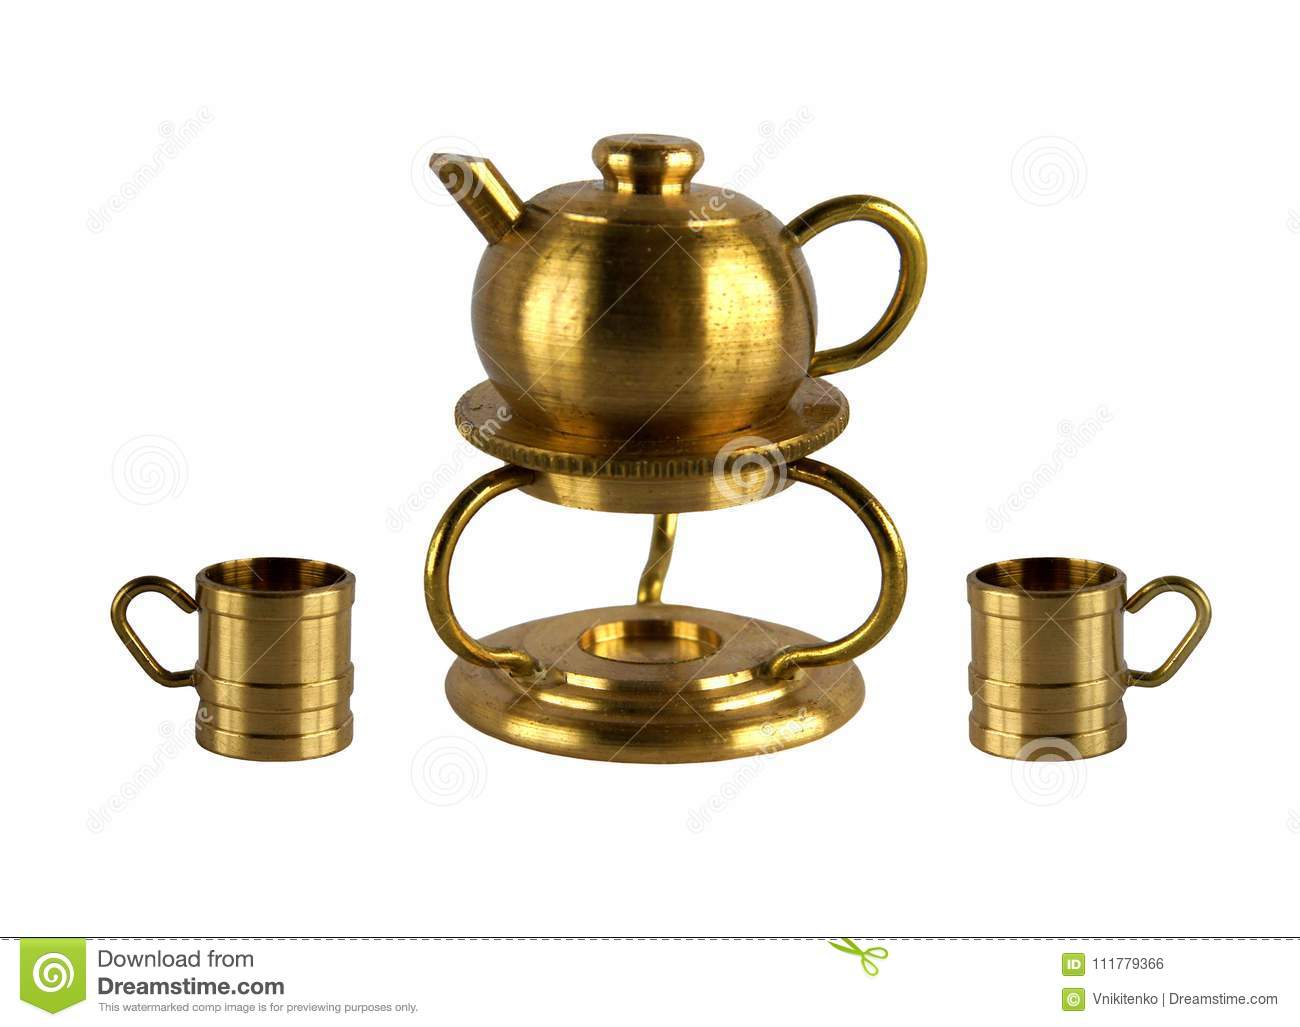 Vintage kettle on the stand and two cups